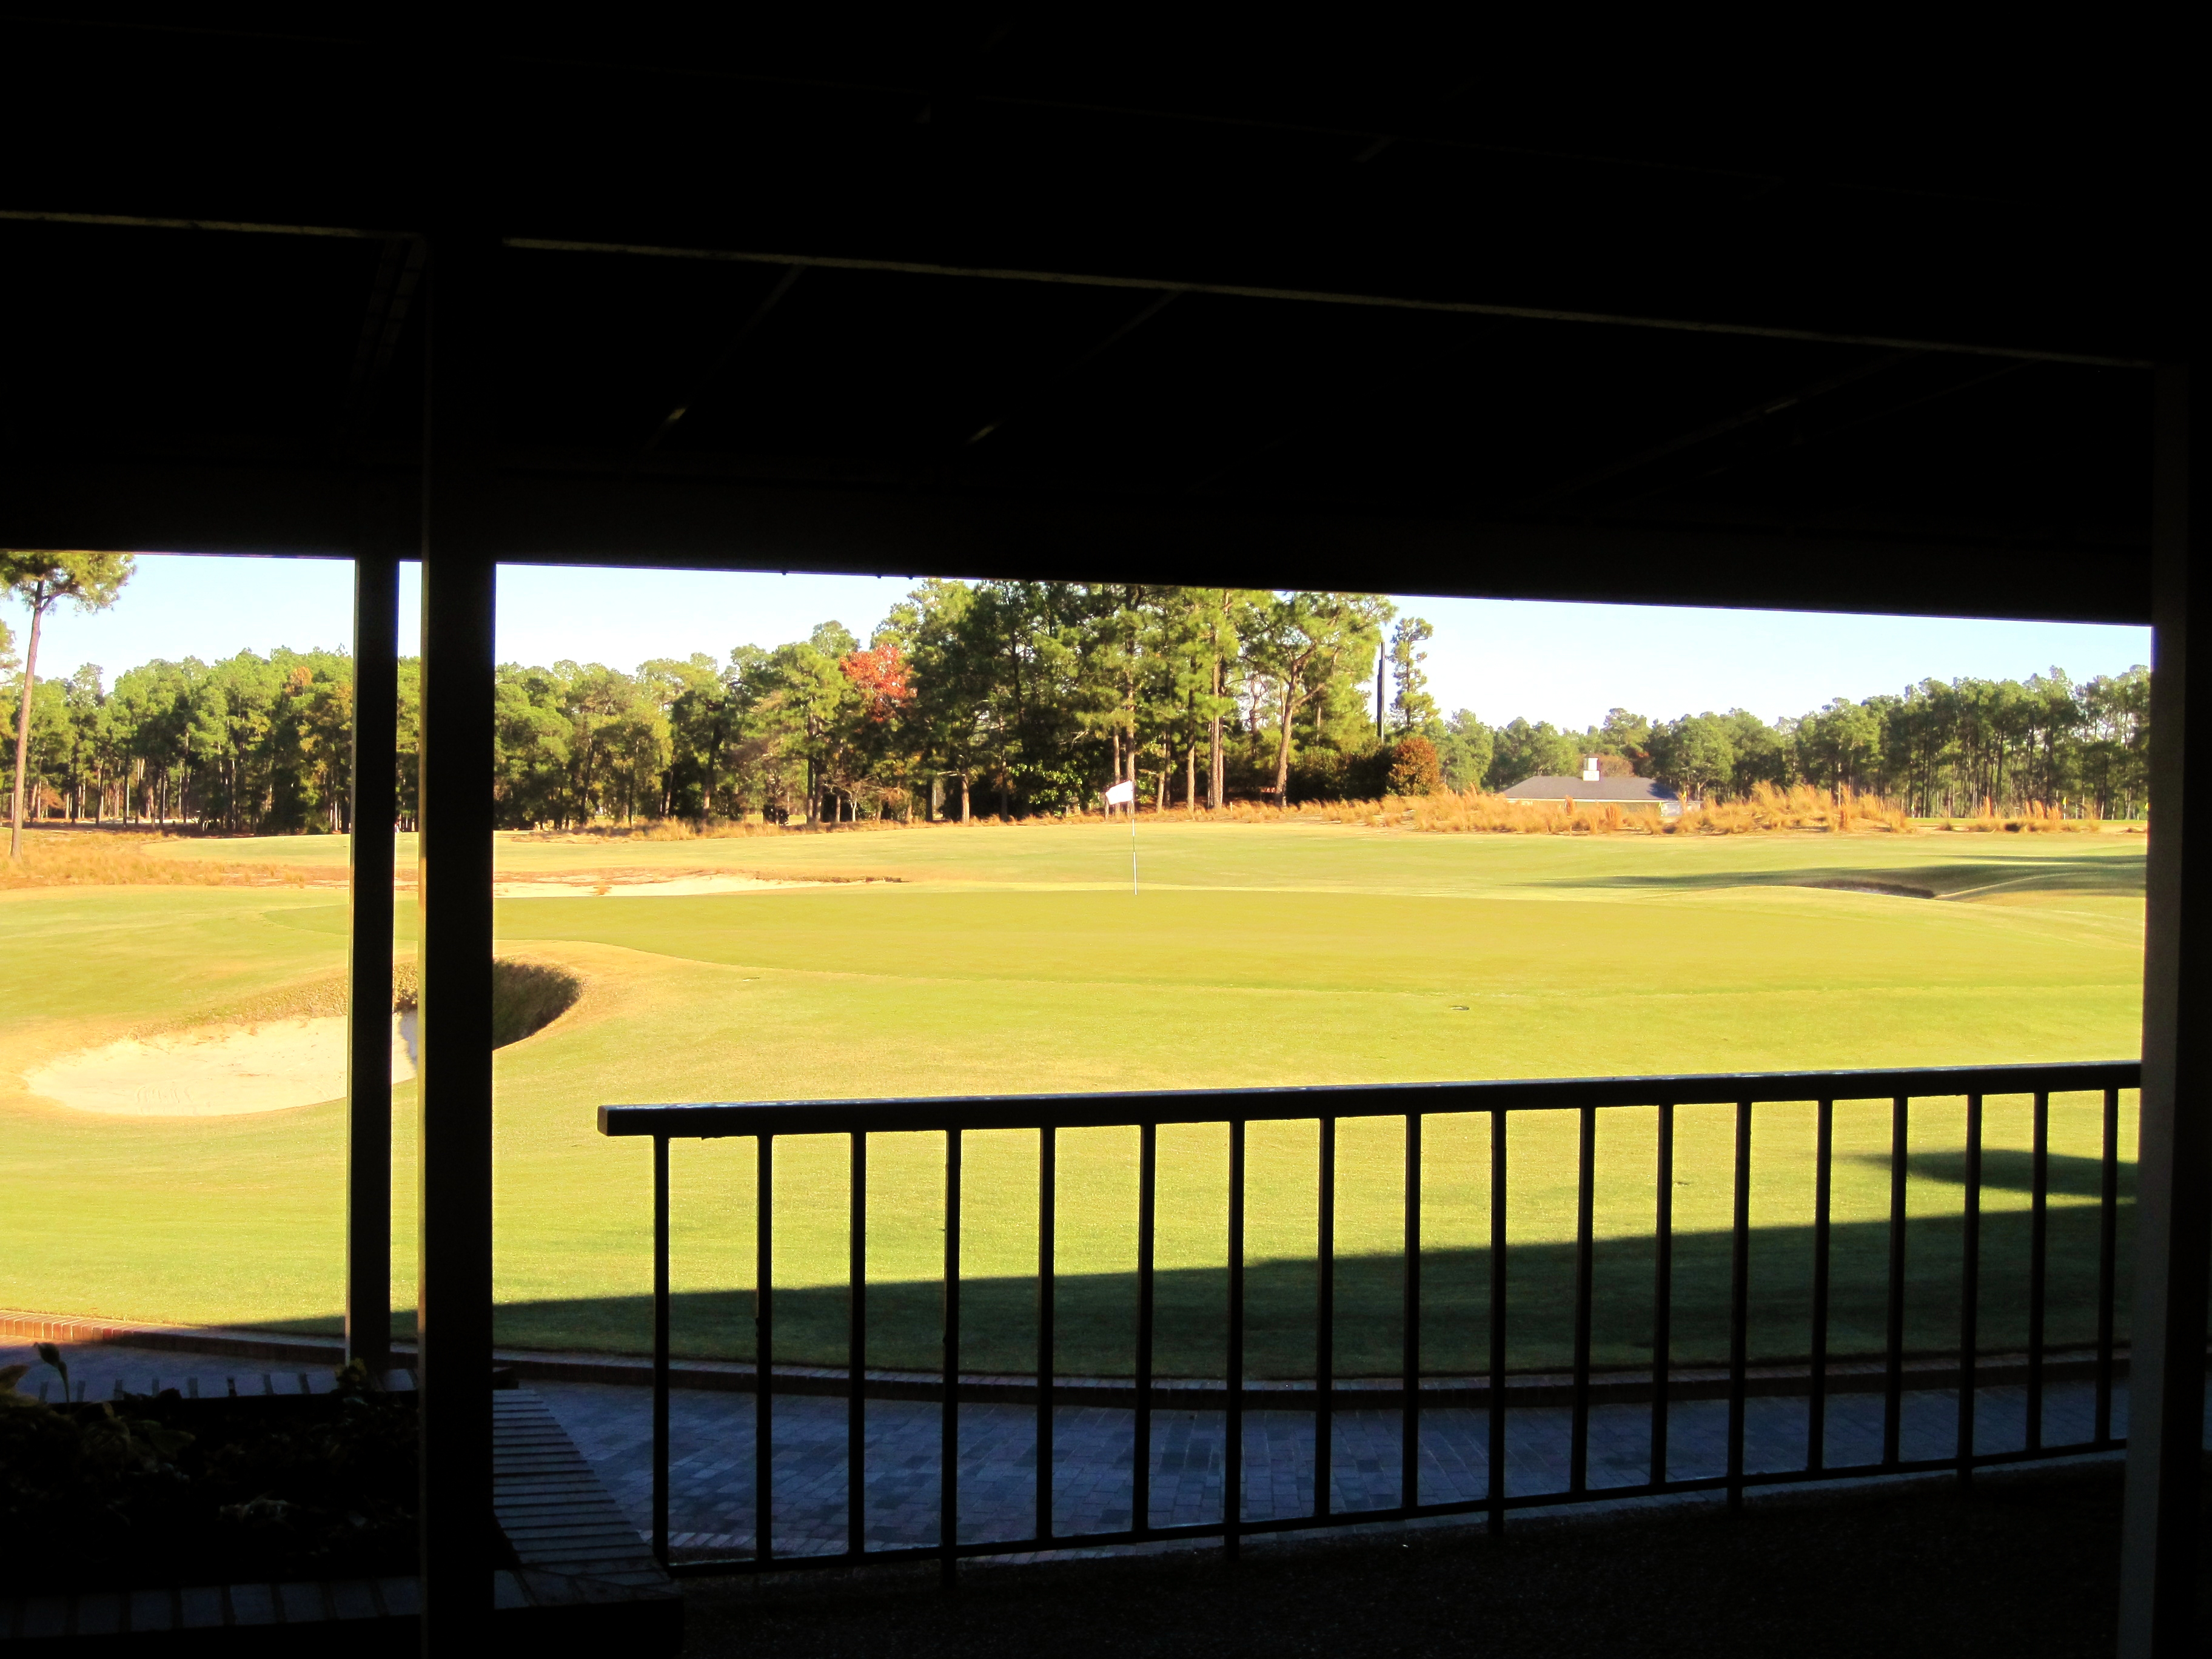 View of the 18th green of Pinehurst No. 2 from the East Veranda, with the green awning still in place.